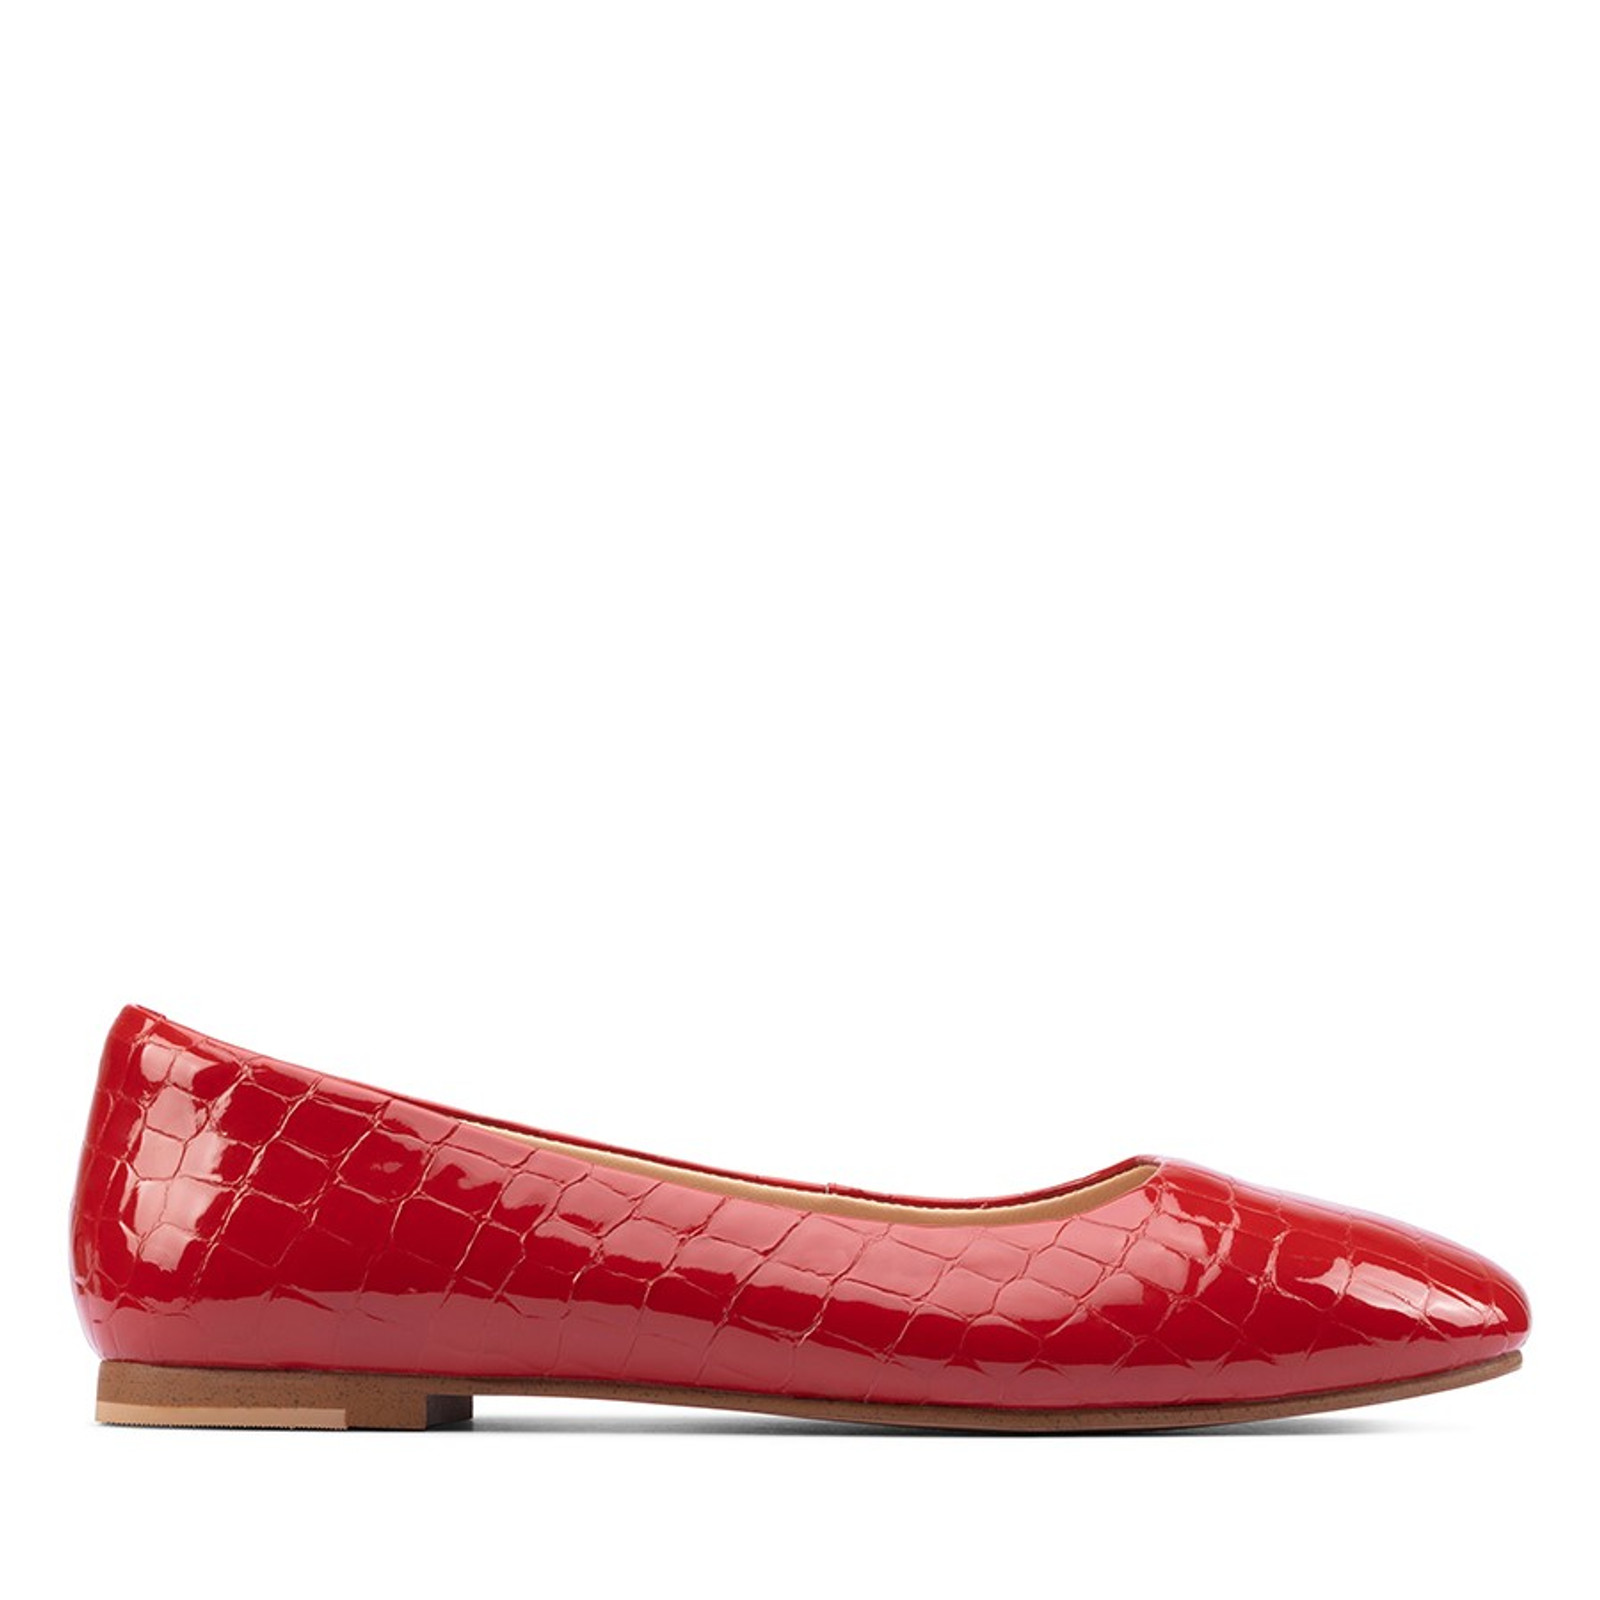 Clarks Womens PURE2 PUMP Red Croc Patent